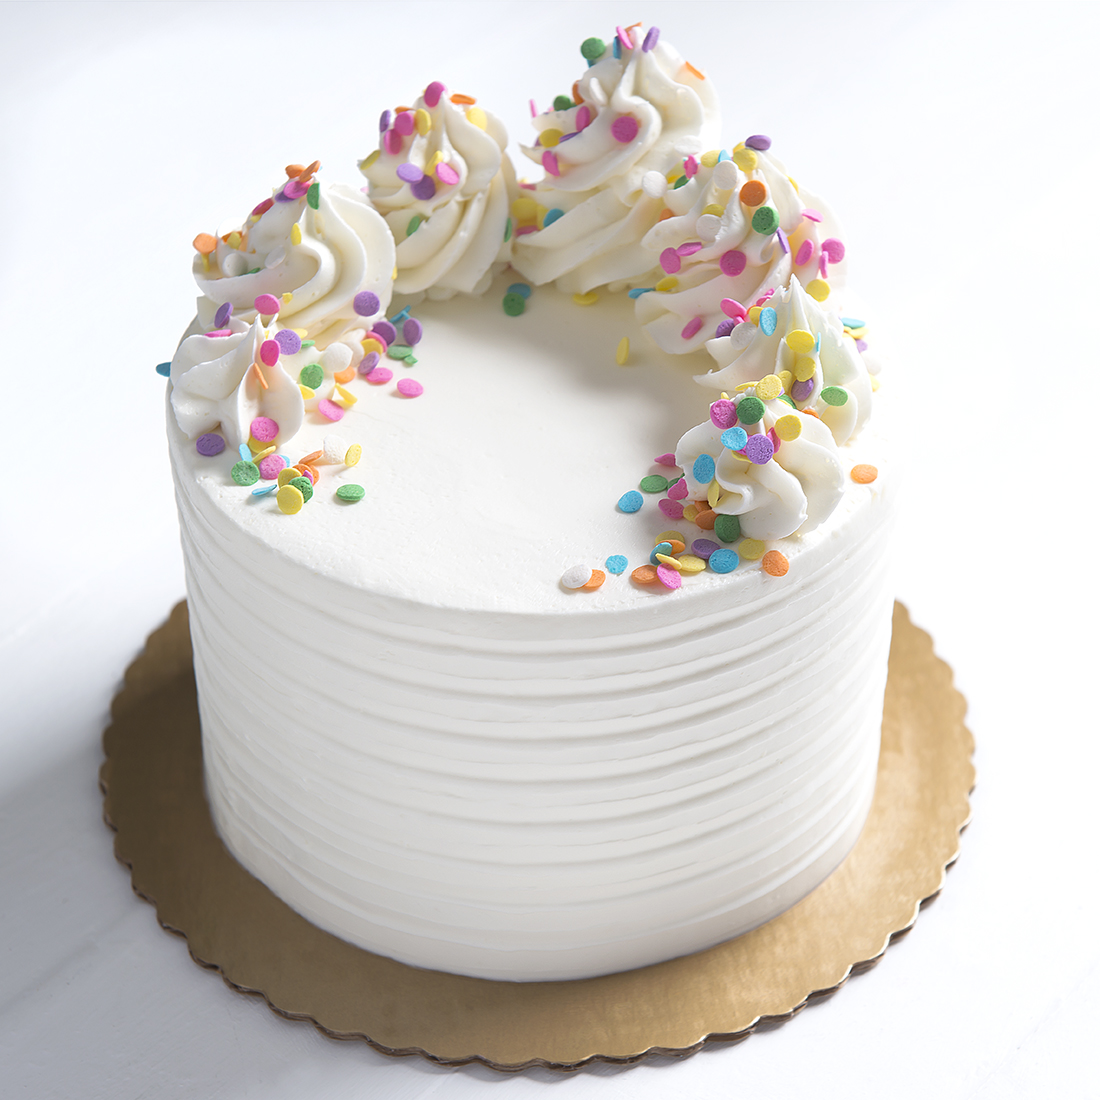 "Vegan Confetti - Confetti cake layered with vanilla buttercream & sprinkles, vanilla buttercream frosting, sprinkles6"" $40 9"" 55 10"" 70 12"" 90"